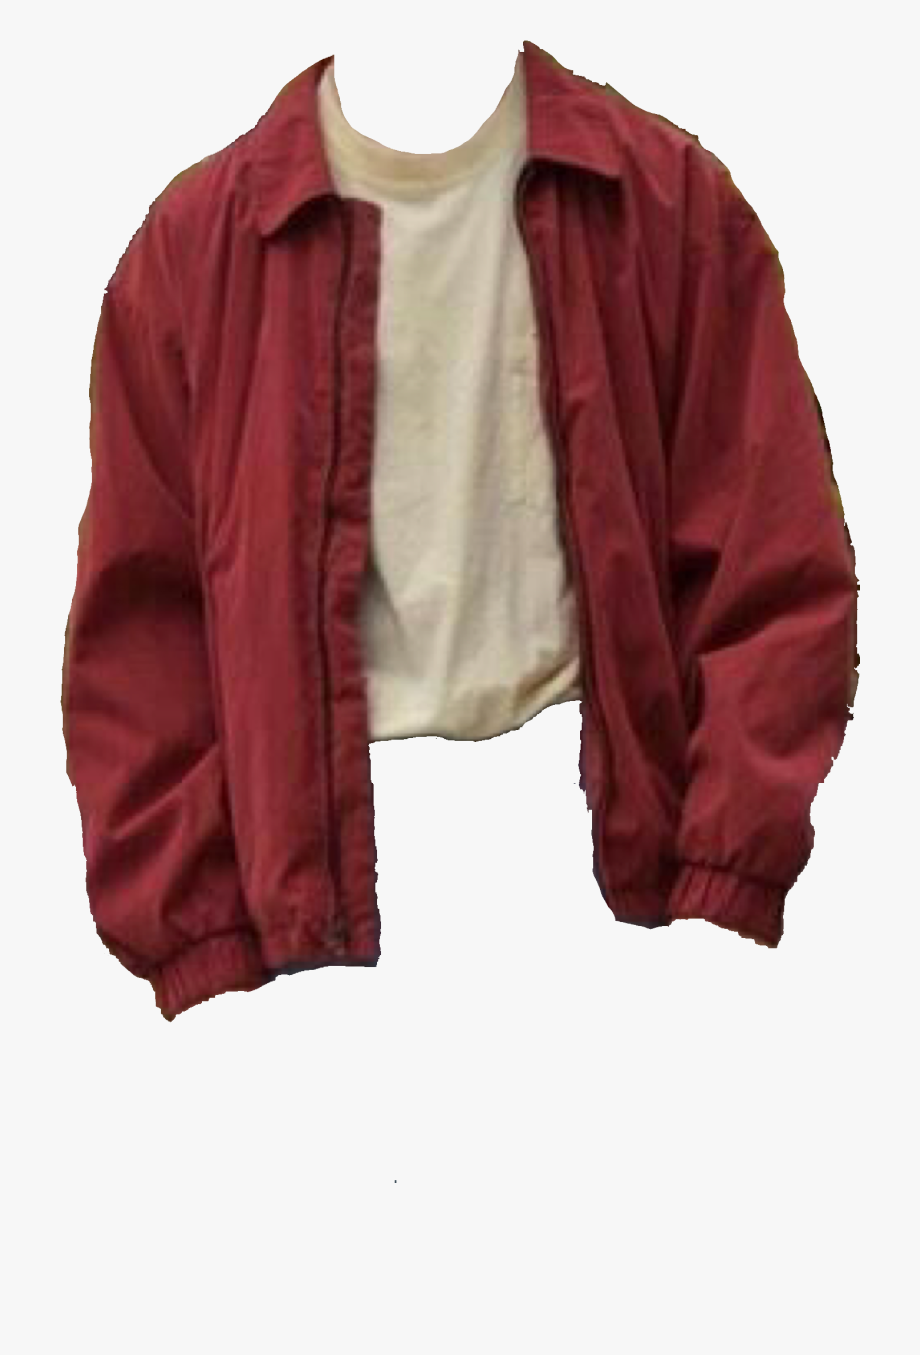 Red Jacket Polyvore Red Jacket Aesthetic Transparent